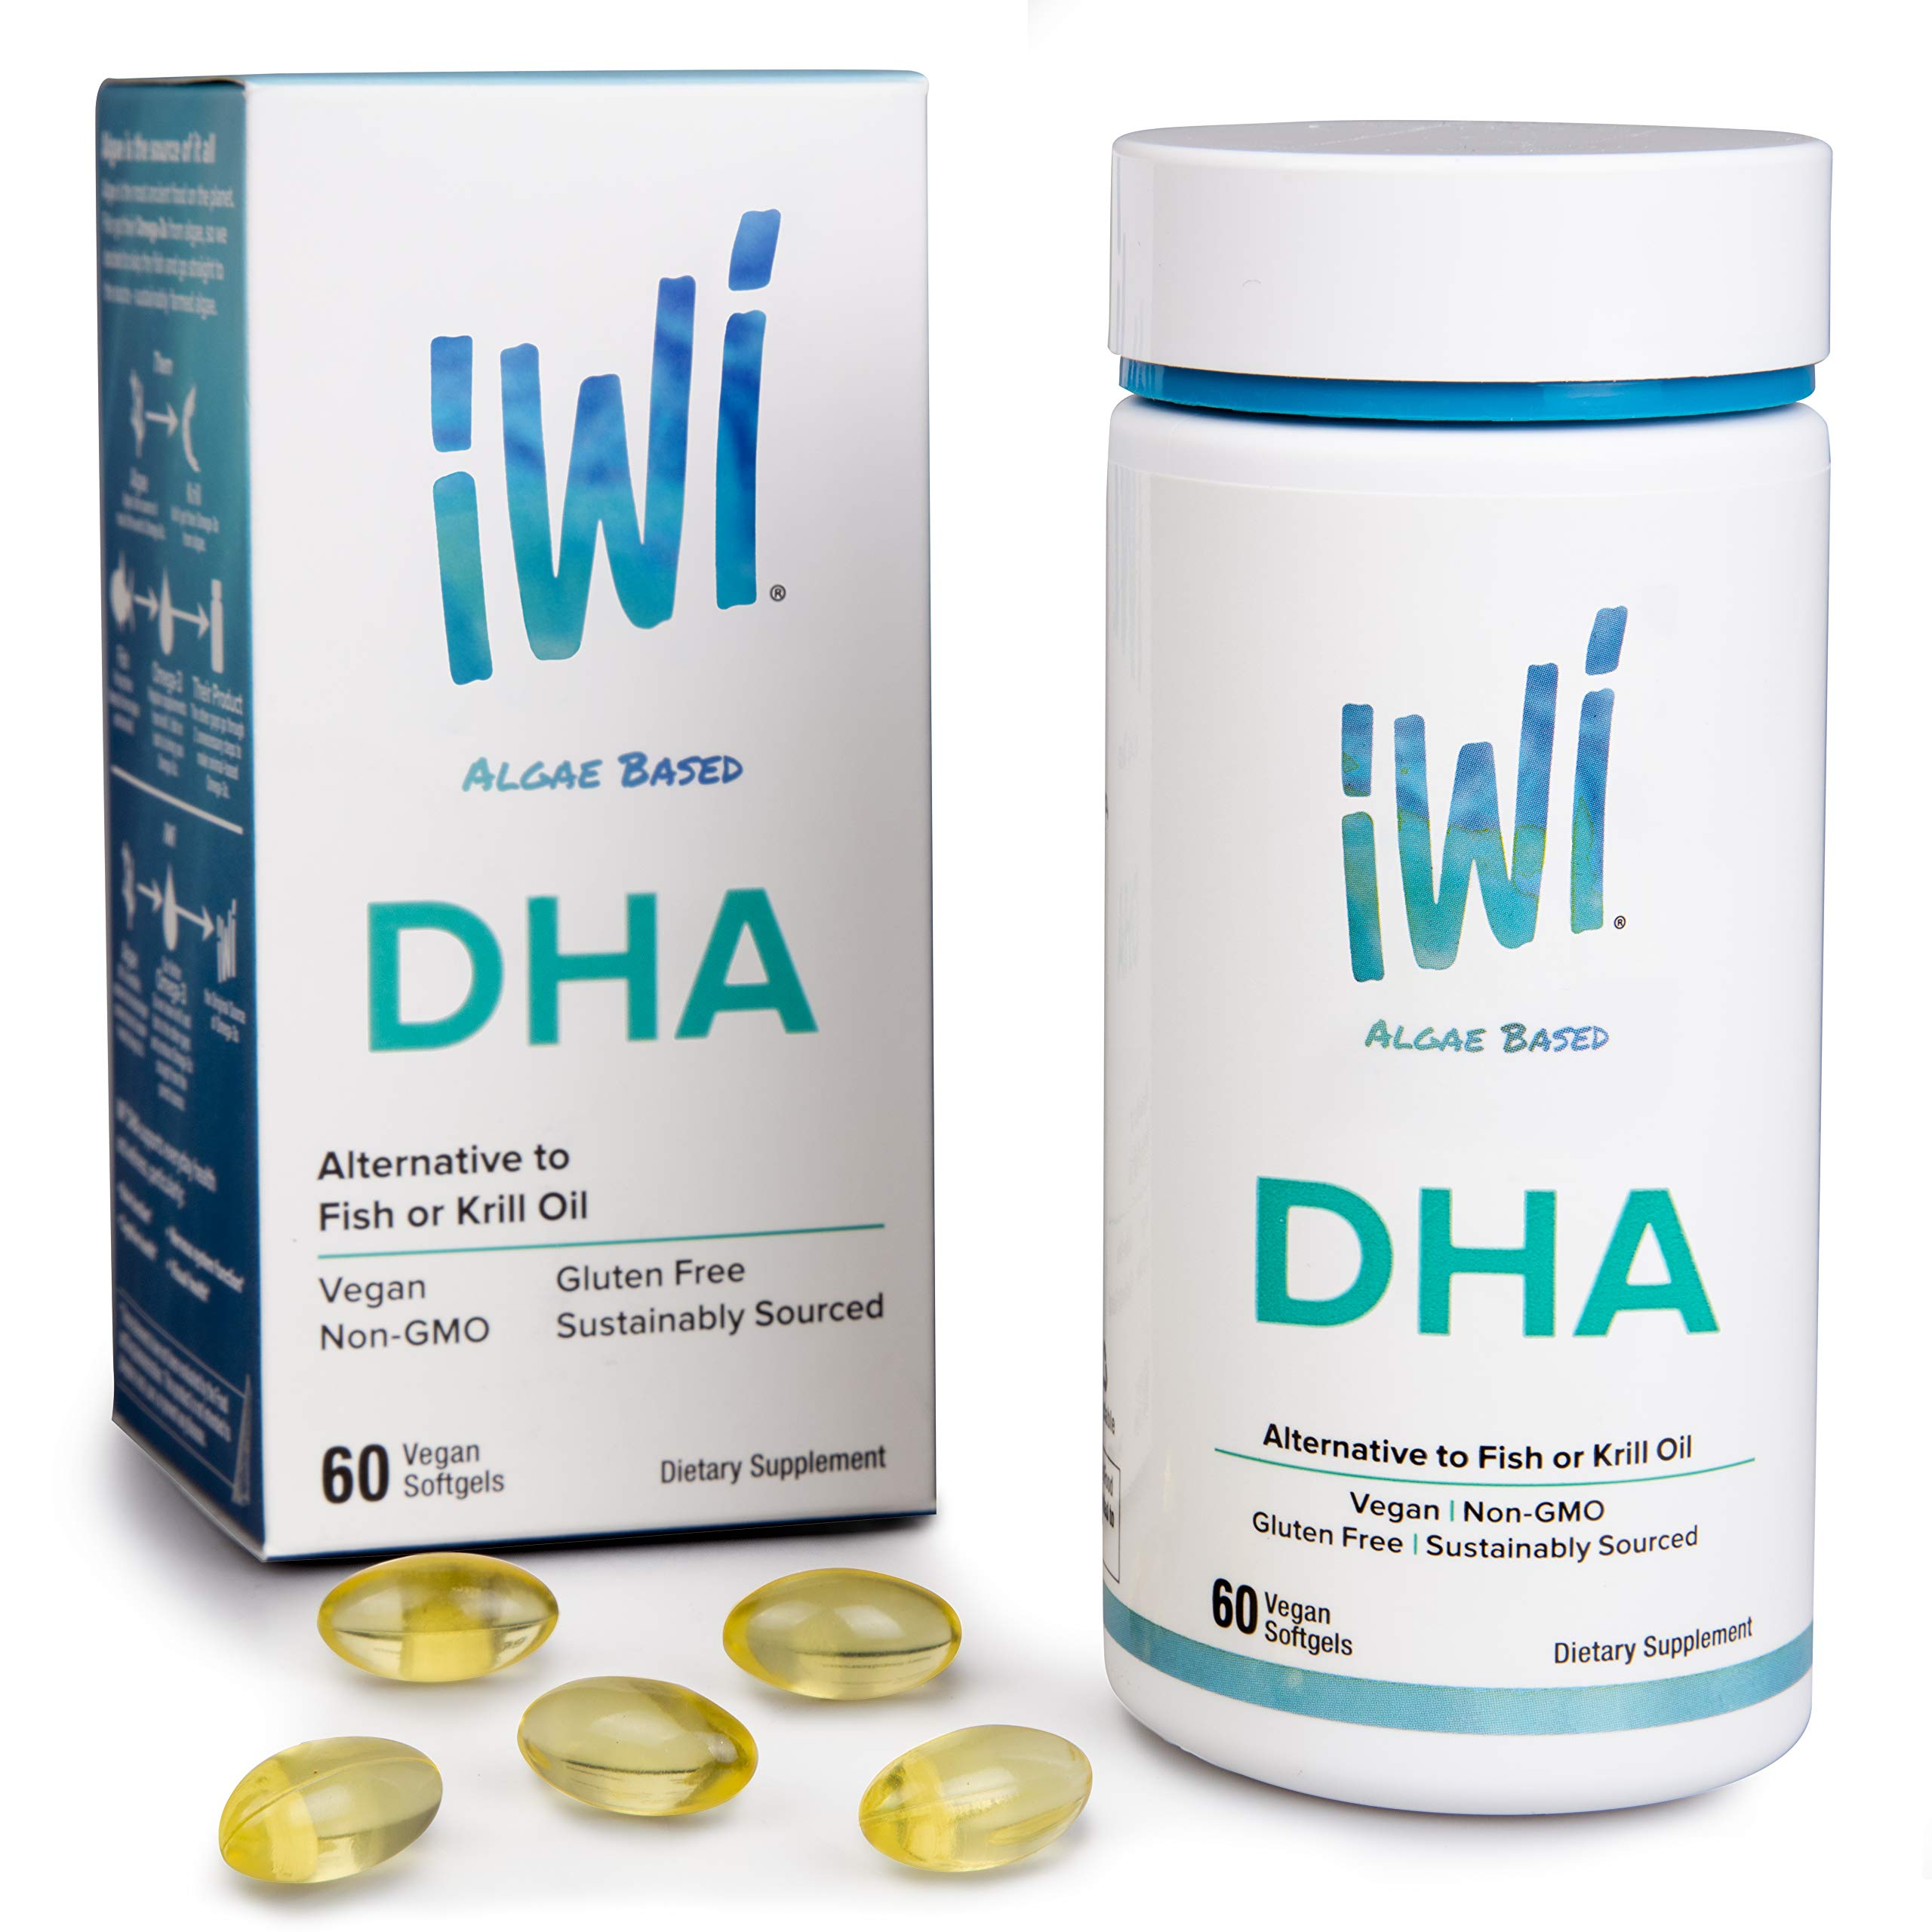 IWI Omega-3 Oil DHA - Doctor Recommended Algae Oil Soft Gel Capsules - 30 Day Supply - Better Absorption, 100% Vegan, Non GMO - Healthier Than Fish Oil - Supports Brain, Cognitive and Visual Health. by Iwi